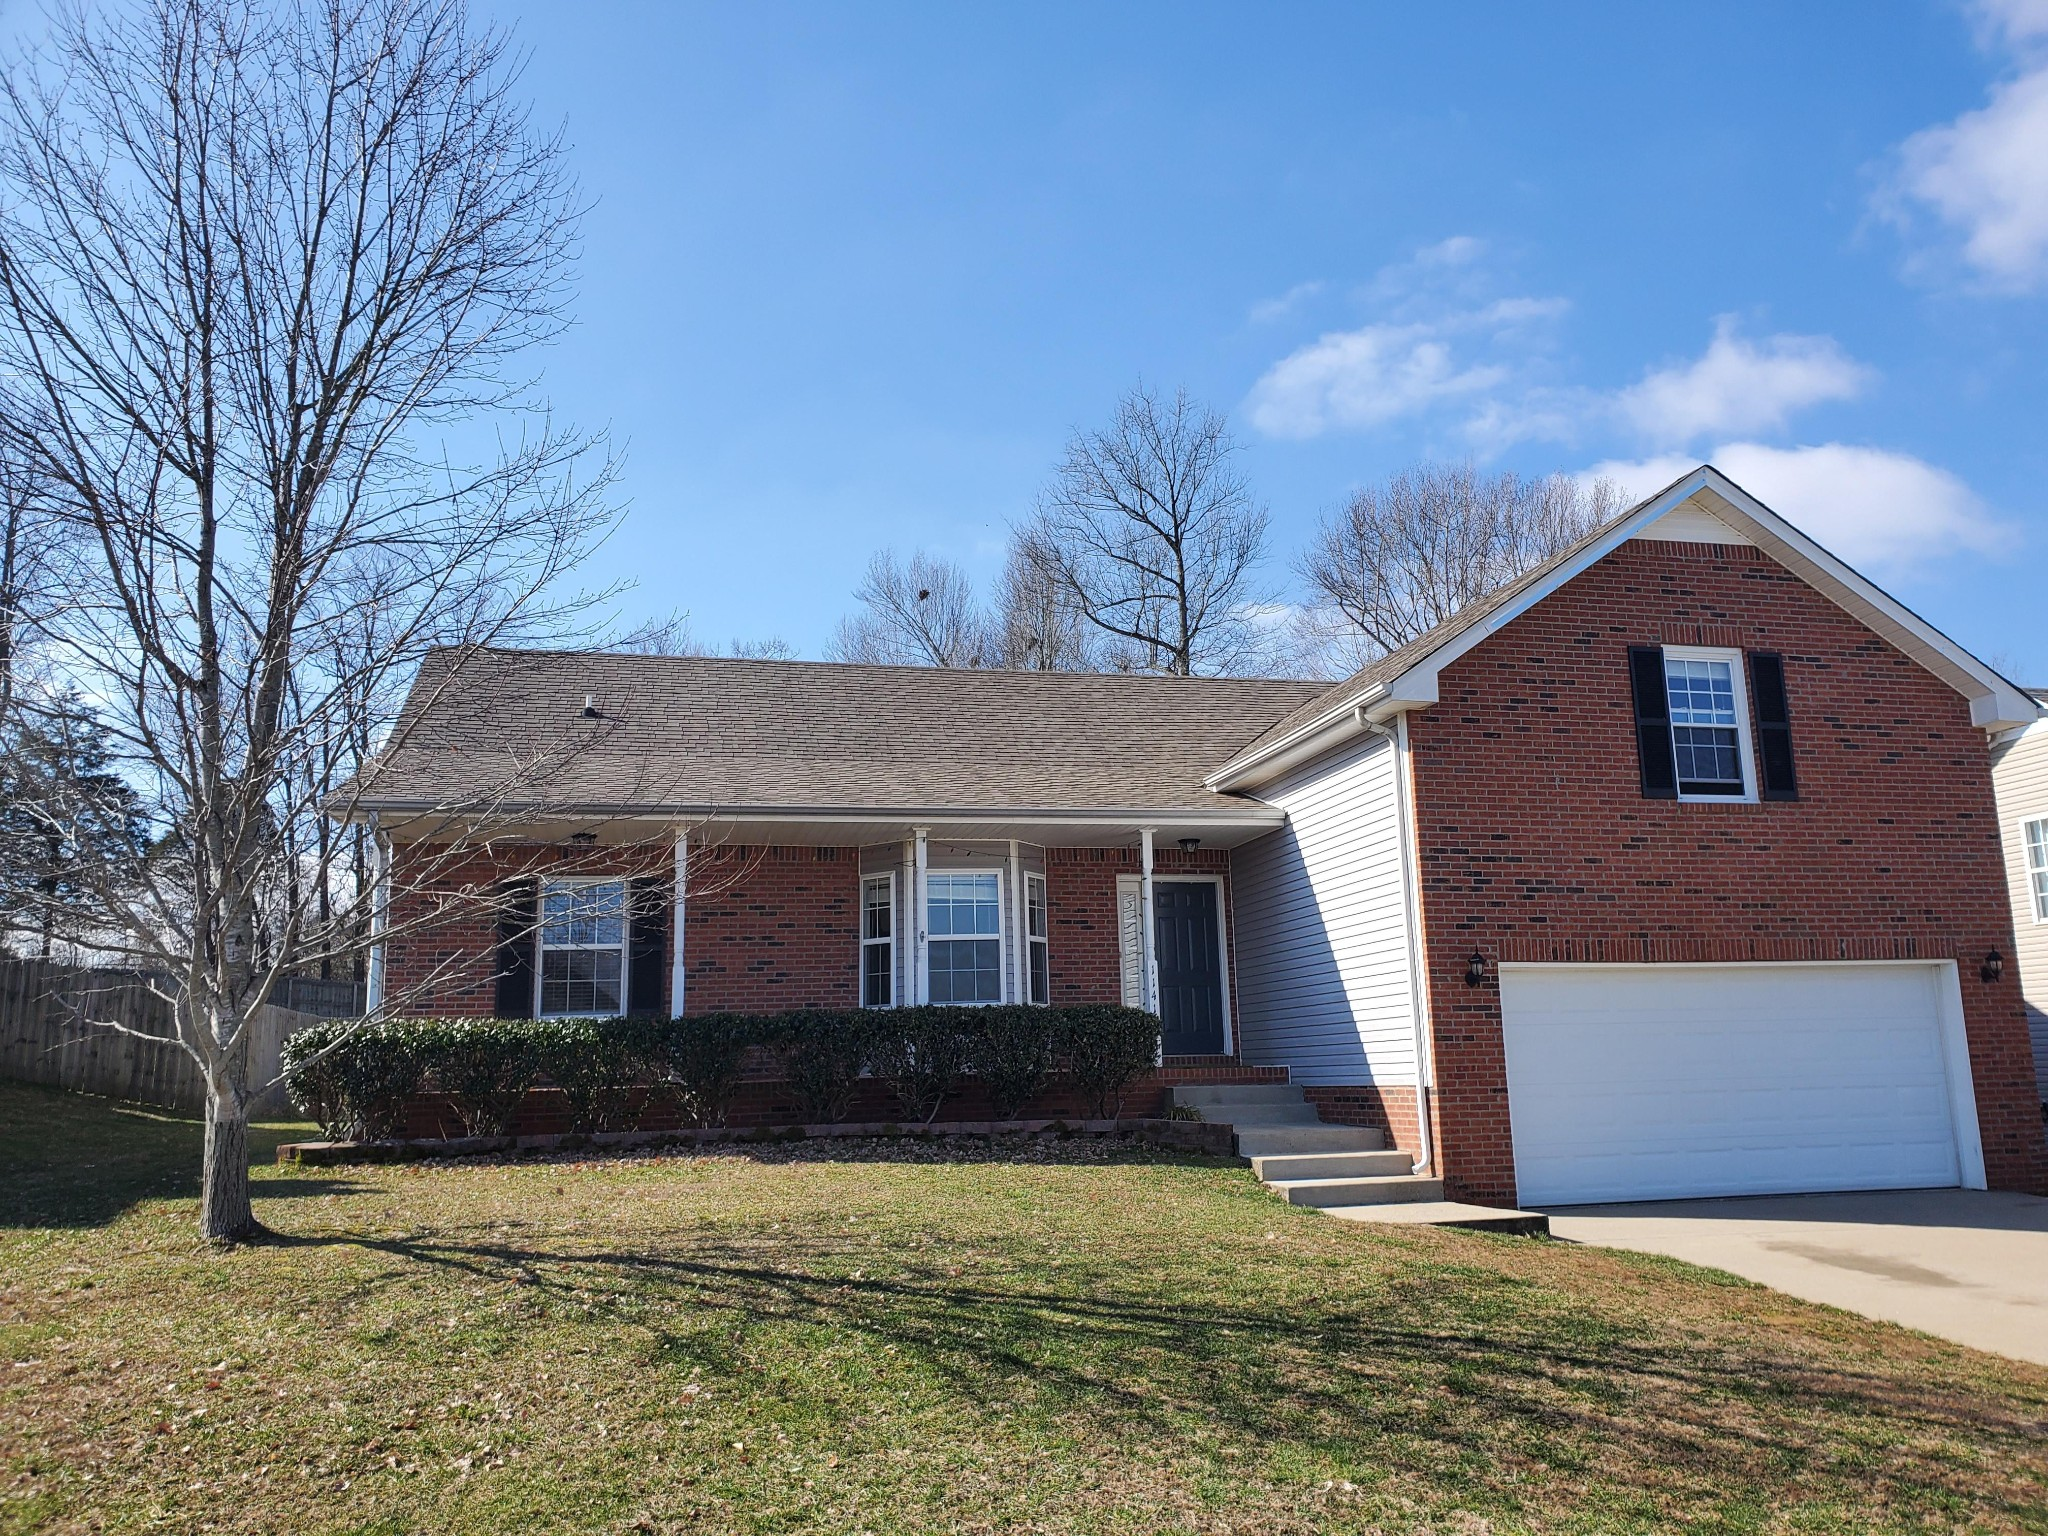 1141 Channelview Ct, Clarksville, TN 37040 - Clarksville, TN real estate listing